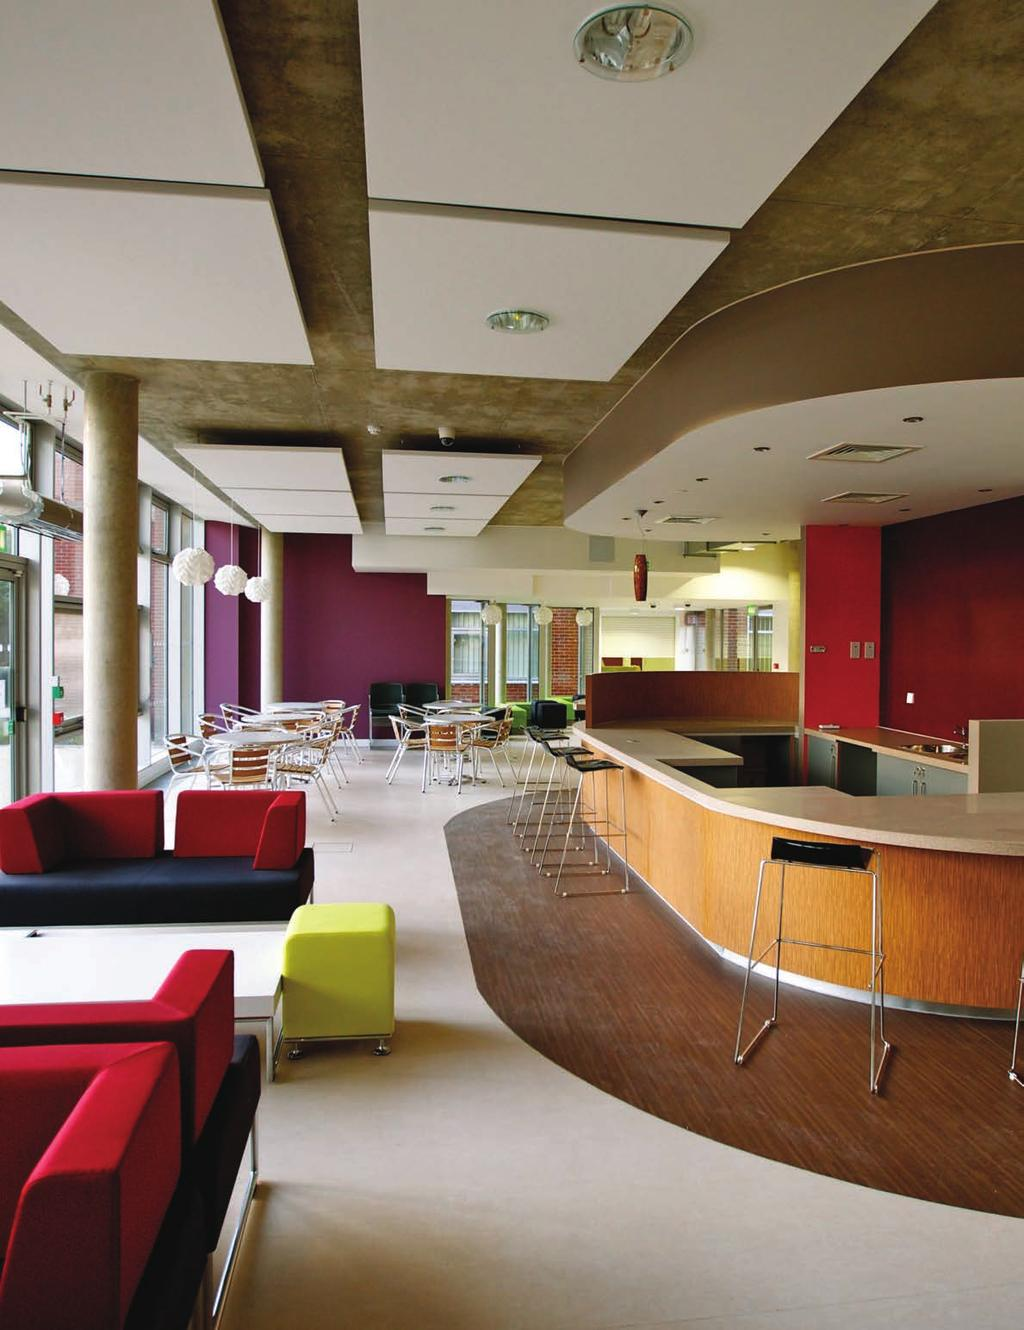 Rockfon Products At A Glance Stone Wool Acoustic Ceiling Tiles And